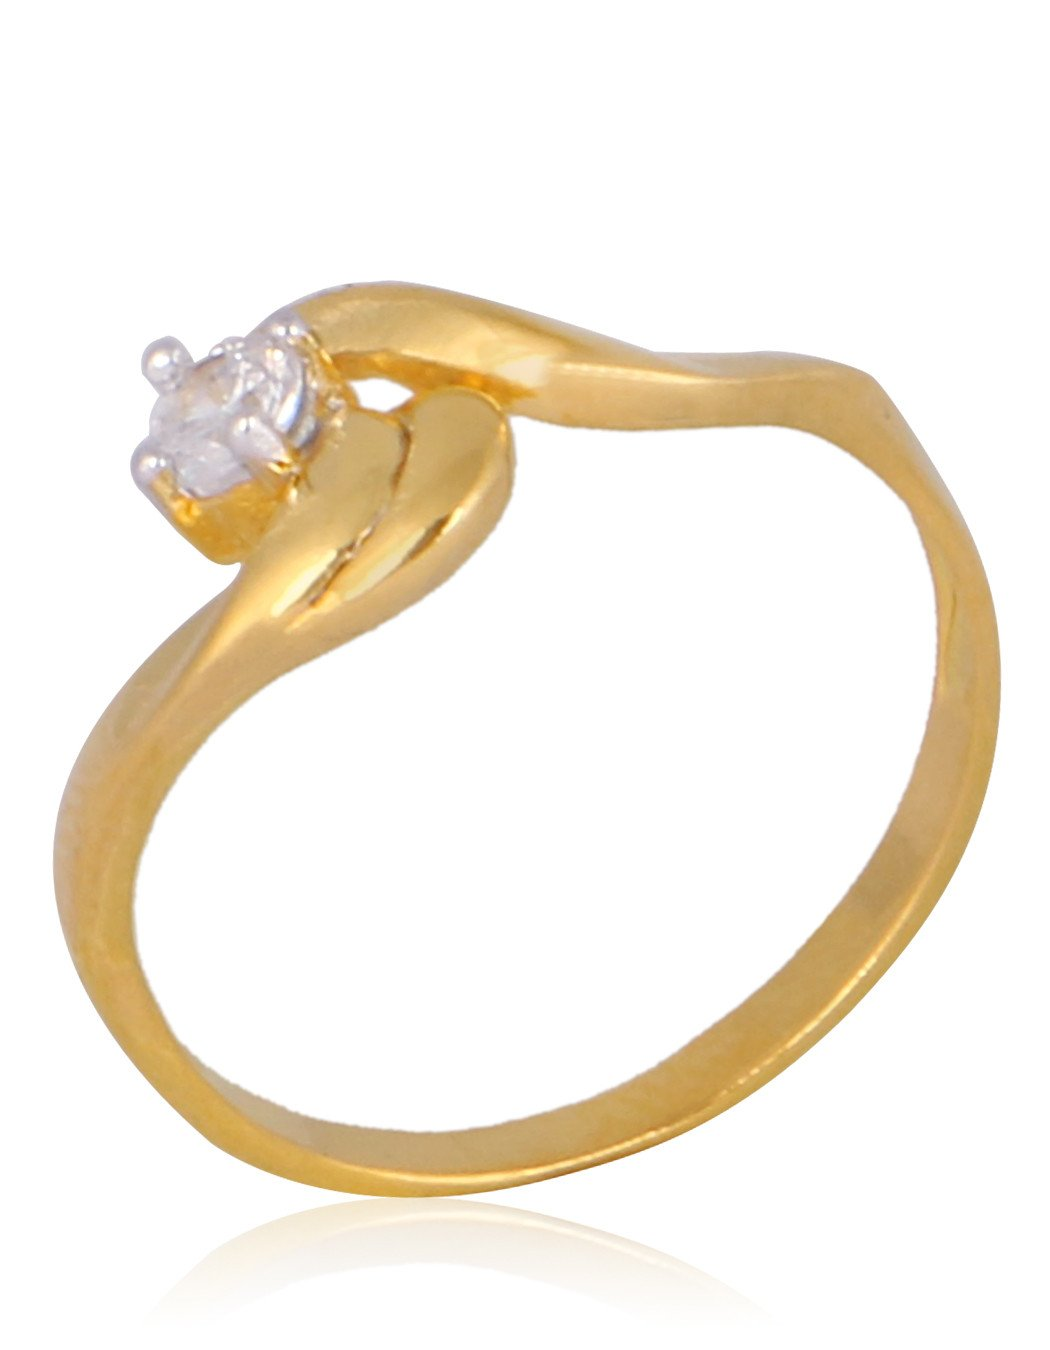 American Diamond Studded Ring in Gold Finish By Meena Bazaar